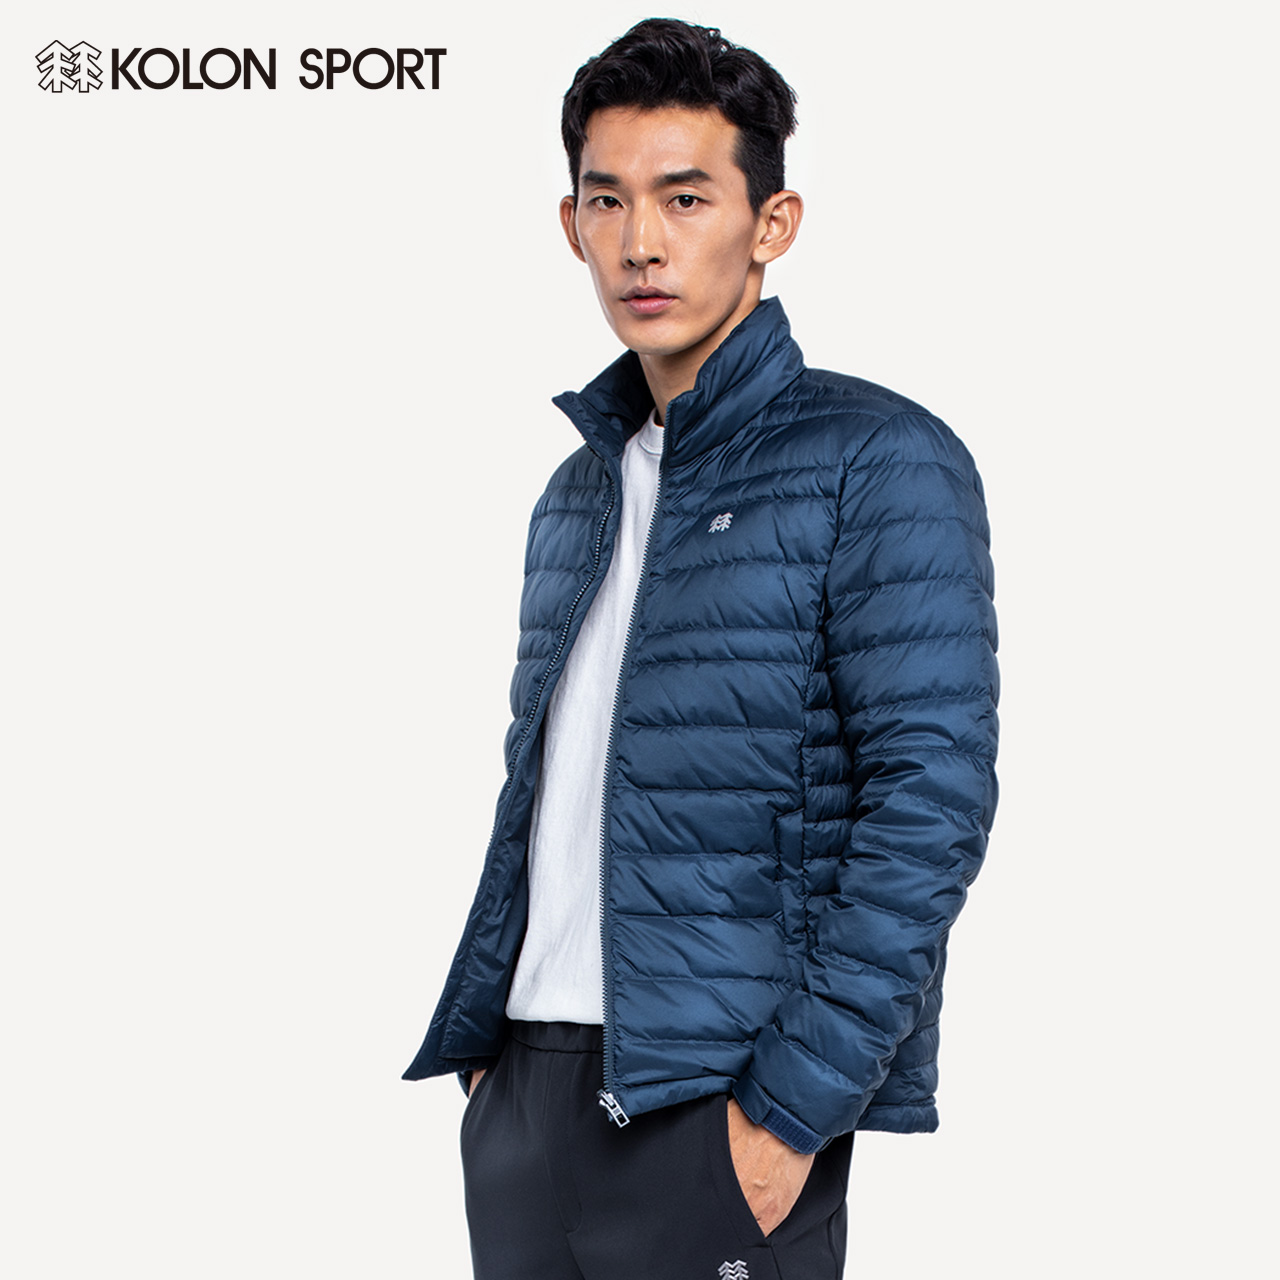 KOLONSPORT Colong down jacket men's lightweight goose down down jacket outdoor collar warm short jacket.